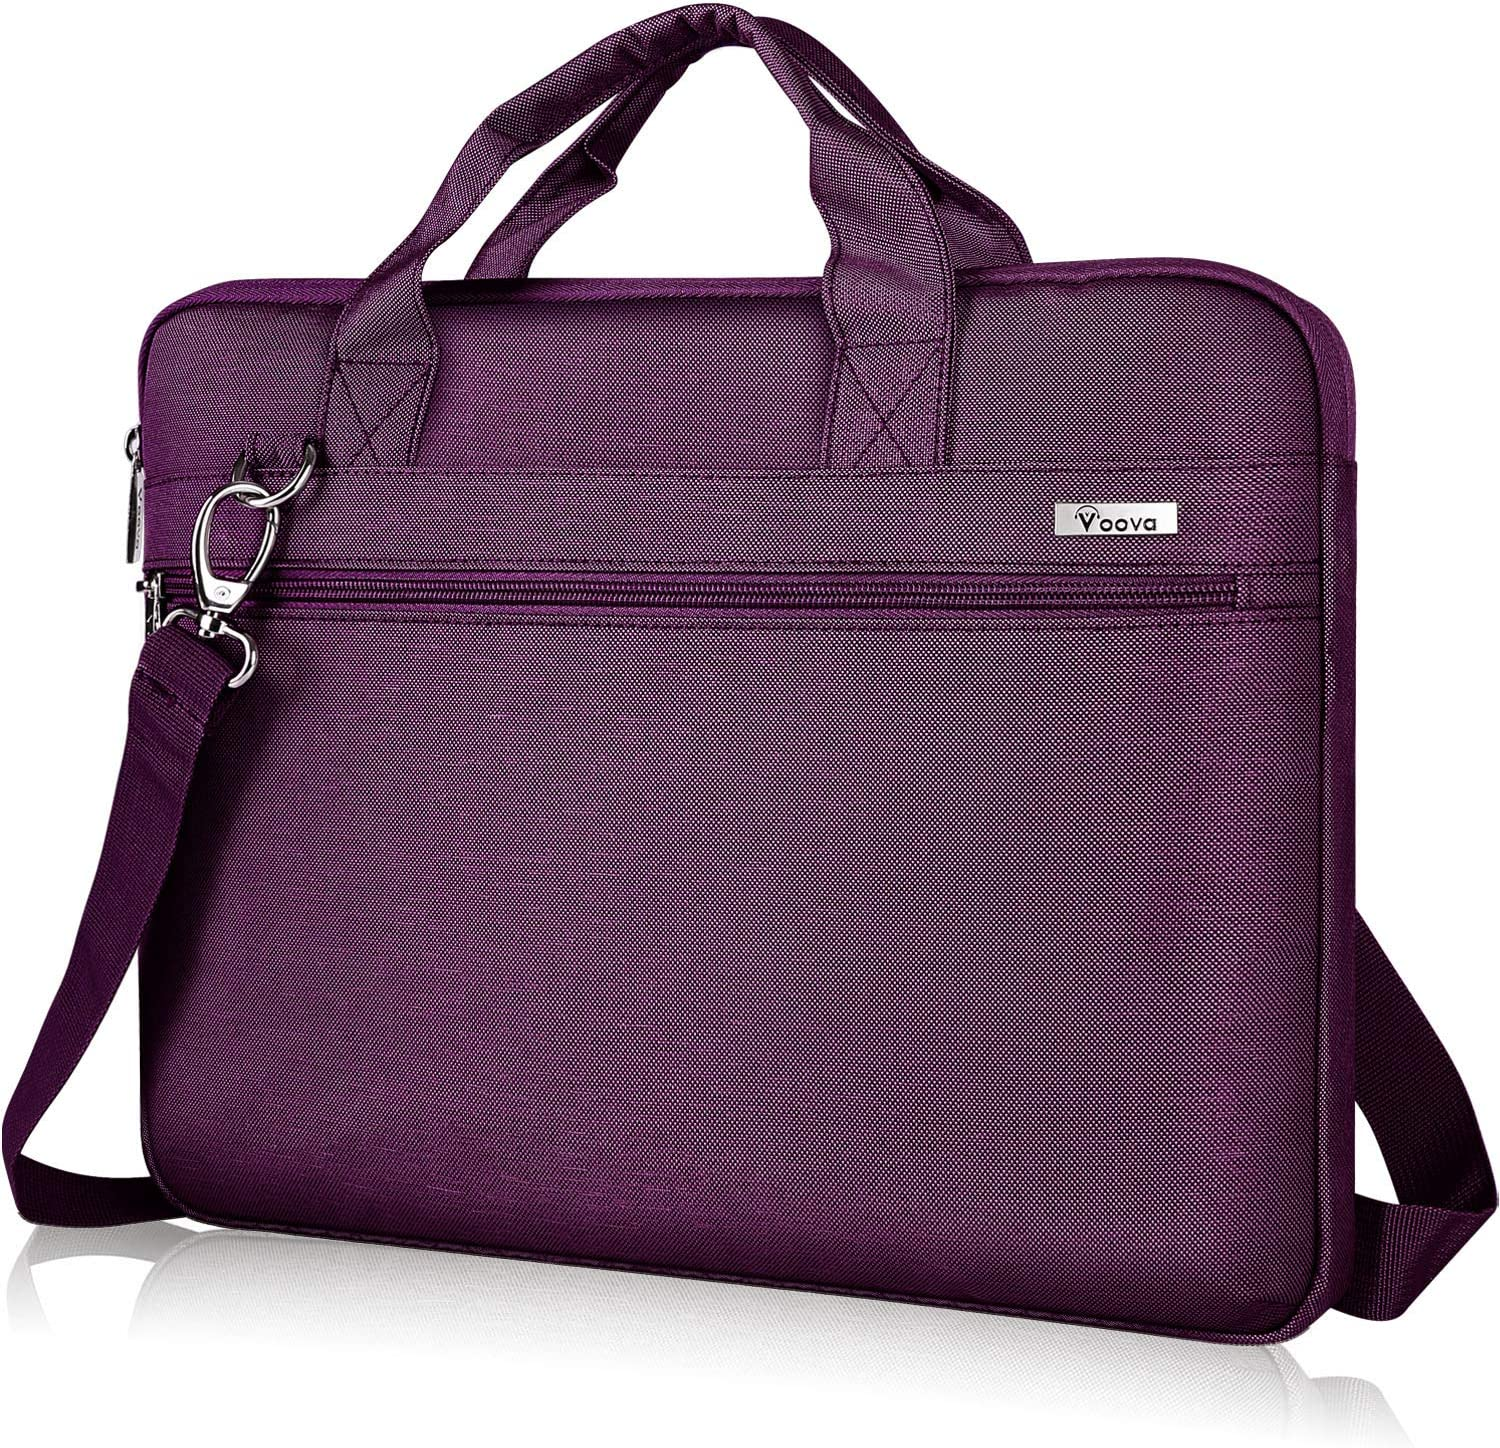 Voova 13 13.3 Inch Laptop Sleeve Case Bag Compatible with Macbook Air/Pro 13, 13.5 Surface Laptop/Book 4 3 2, Hp Dell Xps 13 Chromebook,Upgrade Protective Computer Carrying Briefcase with Strap,Purple